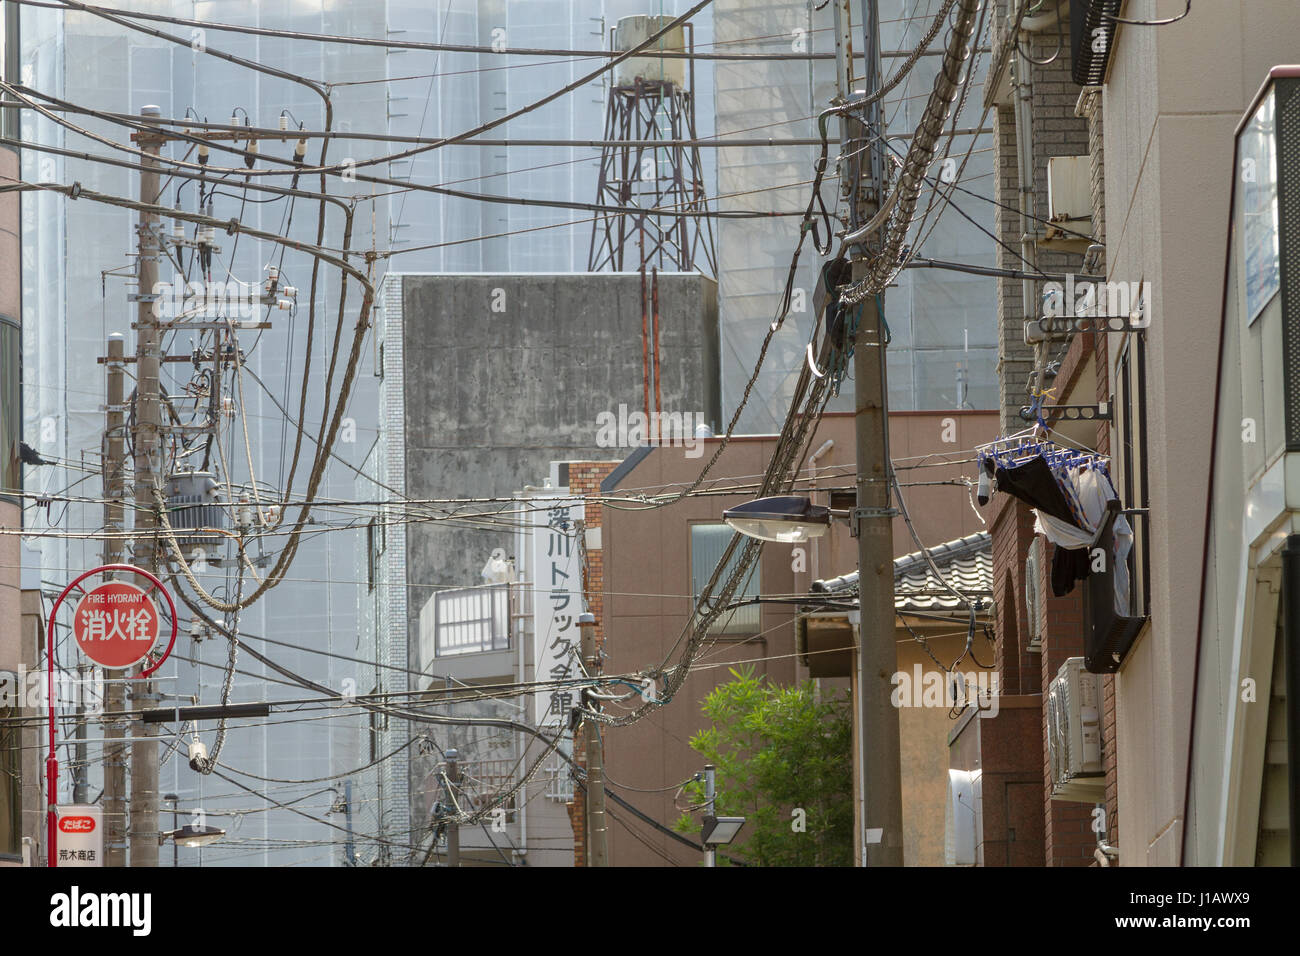 hight resolution of telephone and electrical wires form a messy tangle above a street in tokyo japan friday november 4th 2016